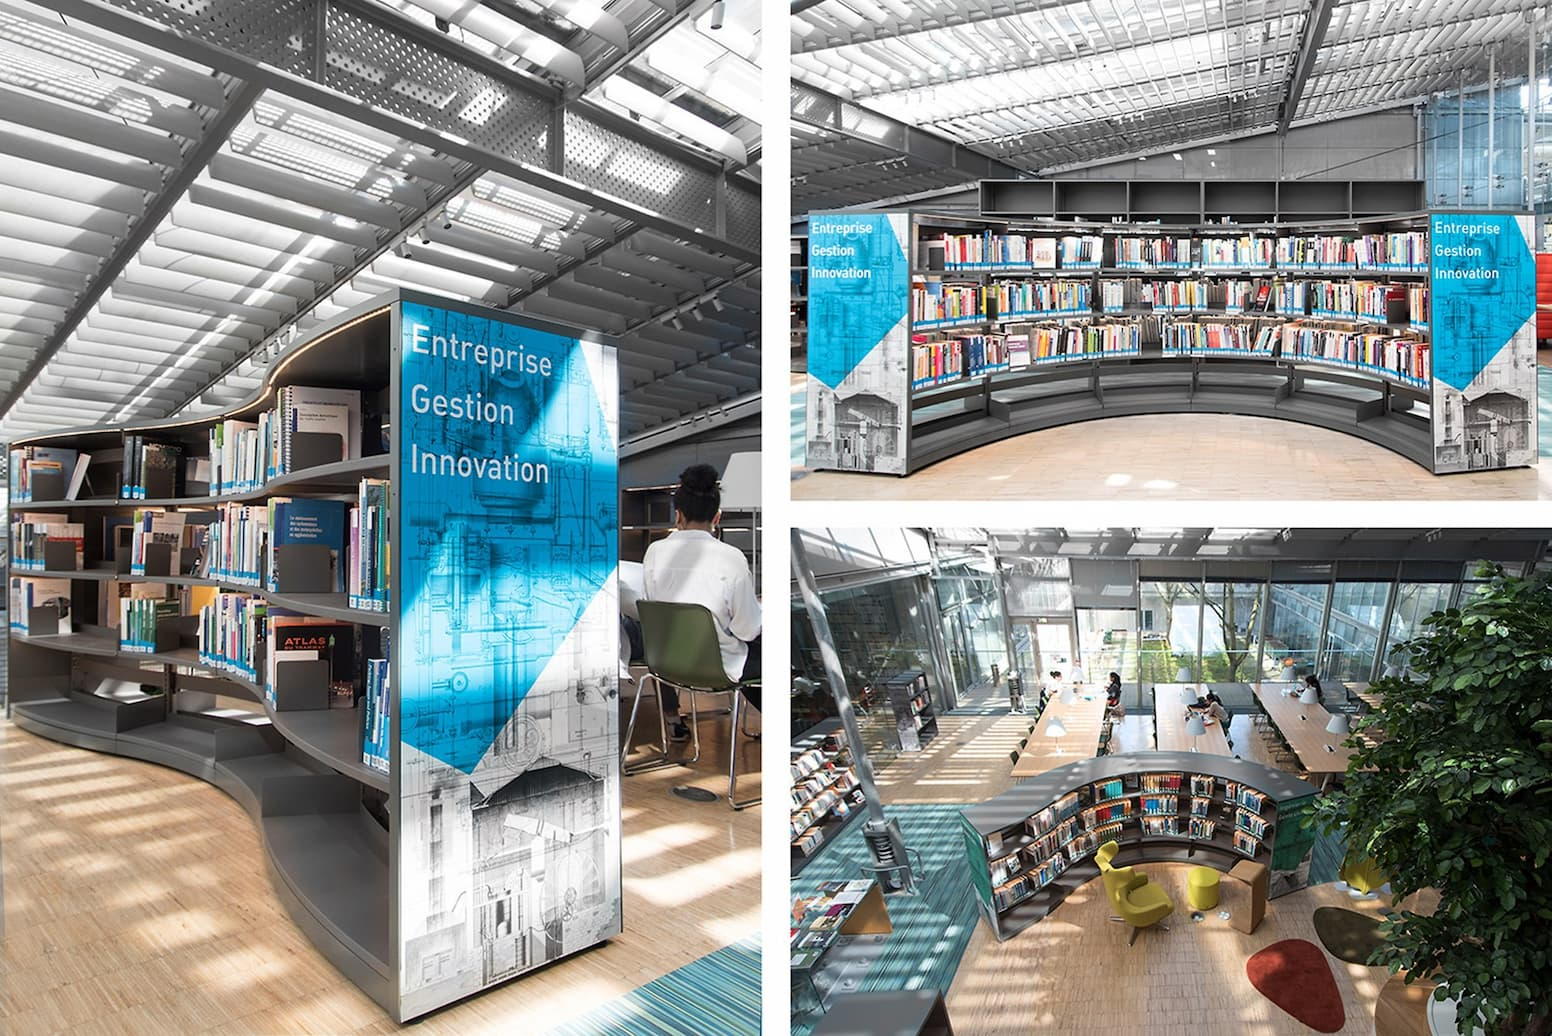 Champs Sur Marne Learning Center Academic Library